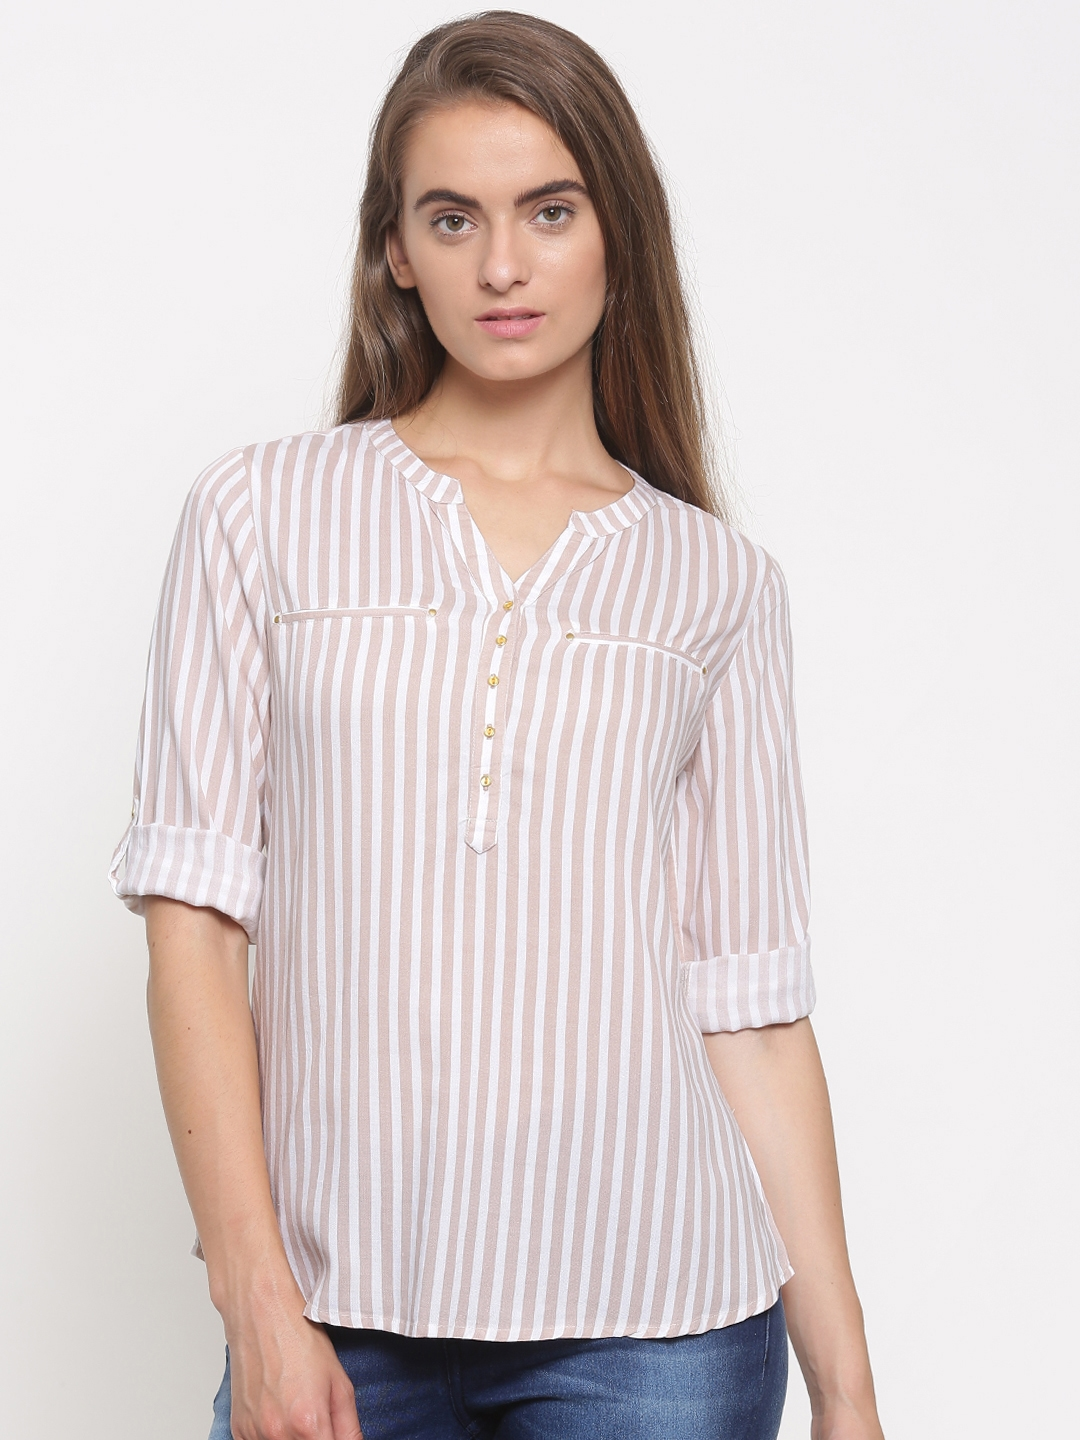 3019a635c5 Fame Forever by Lifestyle Women Beige & White Striped Shirt Style Top